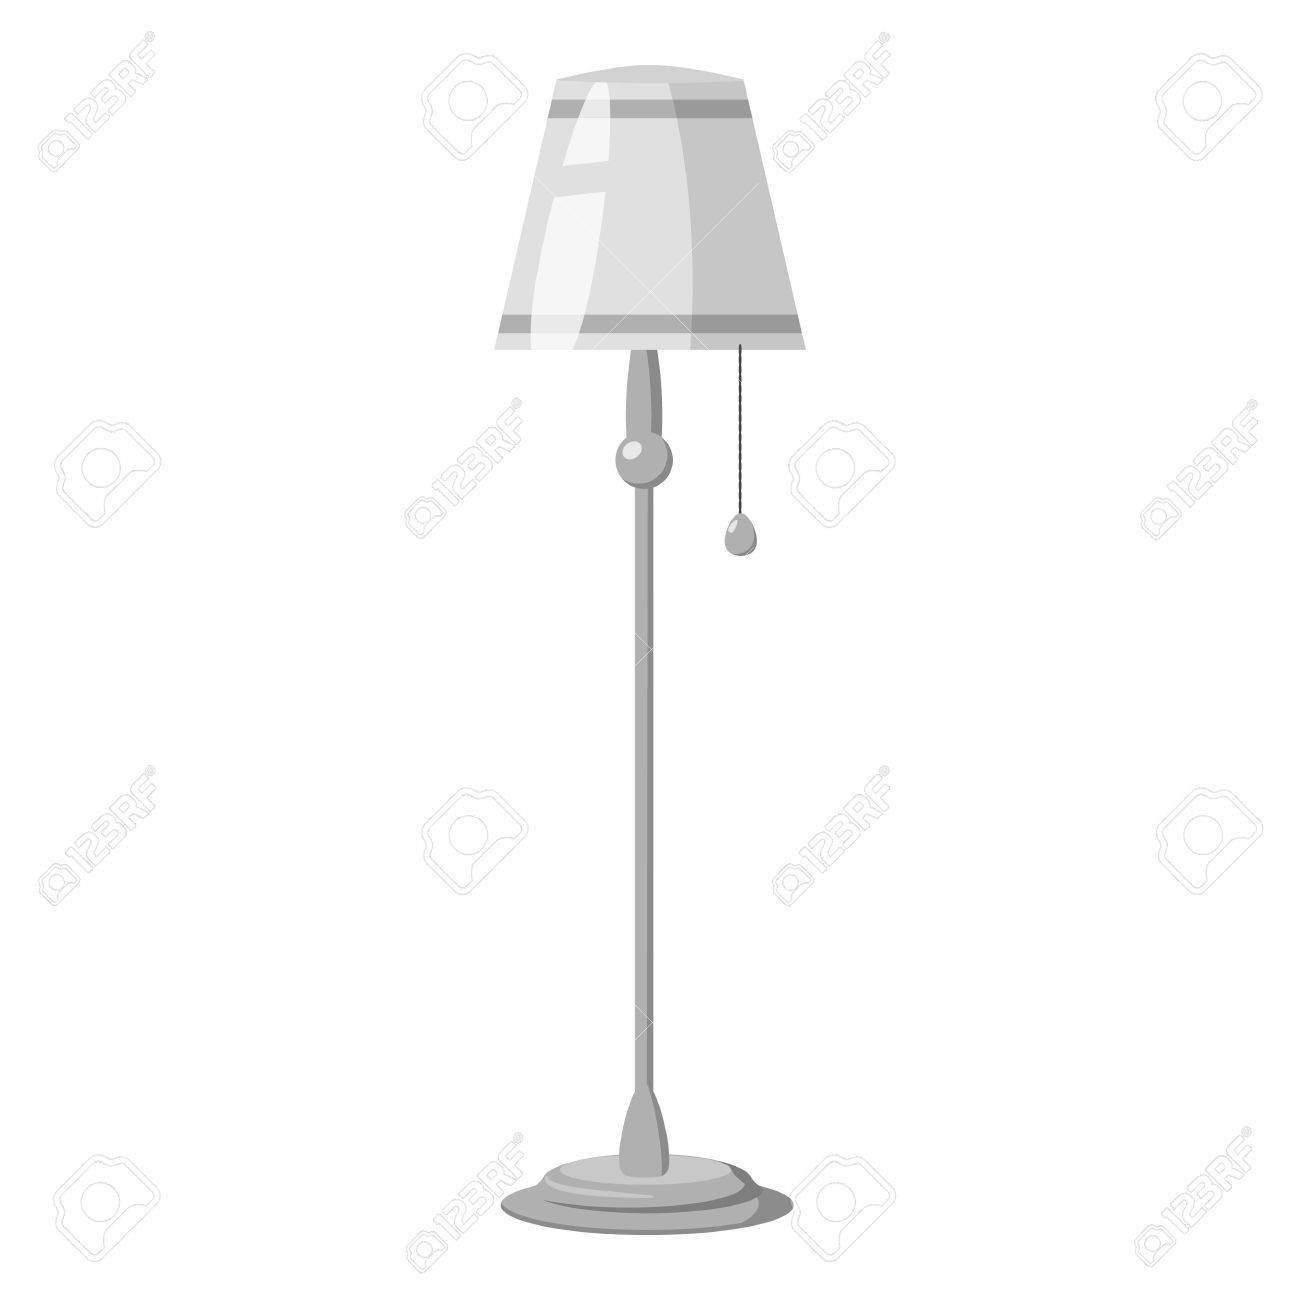 Icone De Lampadaire Illustration Monochrome Gris De L Icone De